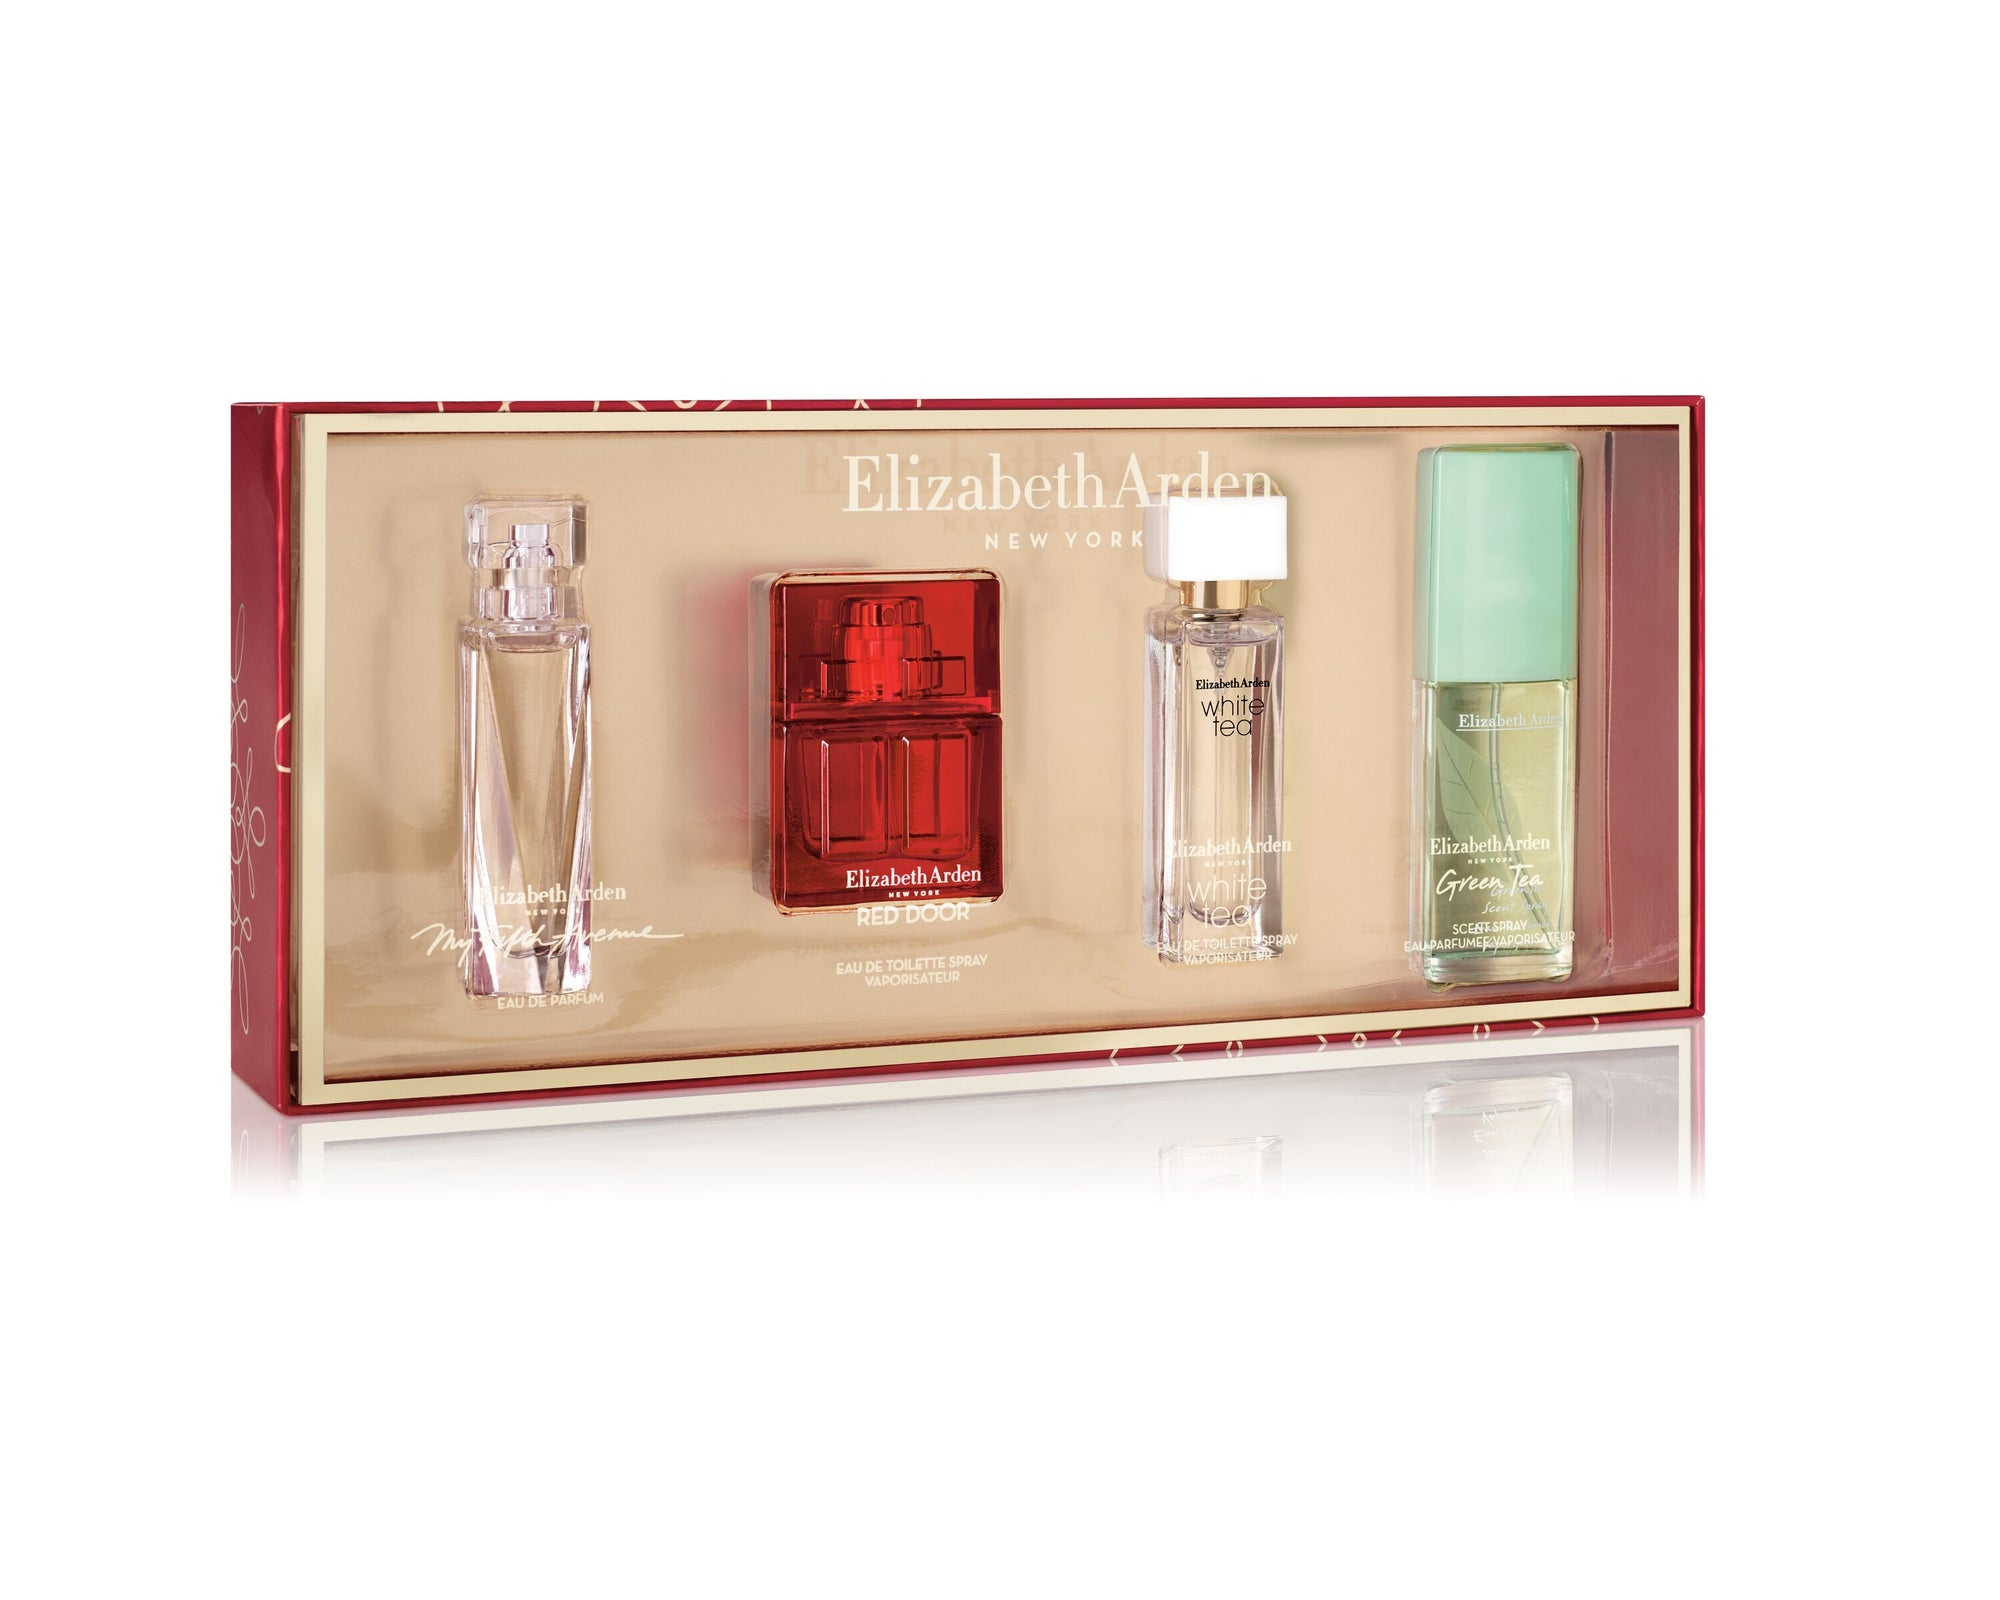 Elizabeth Arden New York Cheer Mini Gift Set 4pc